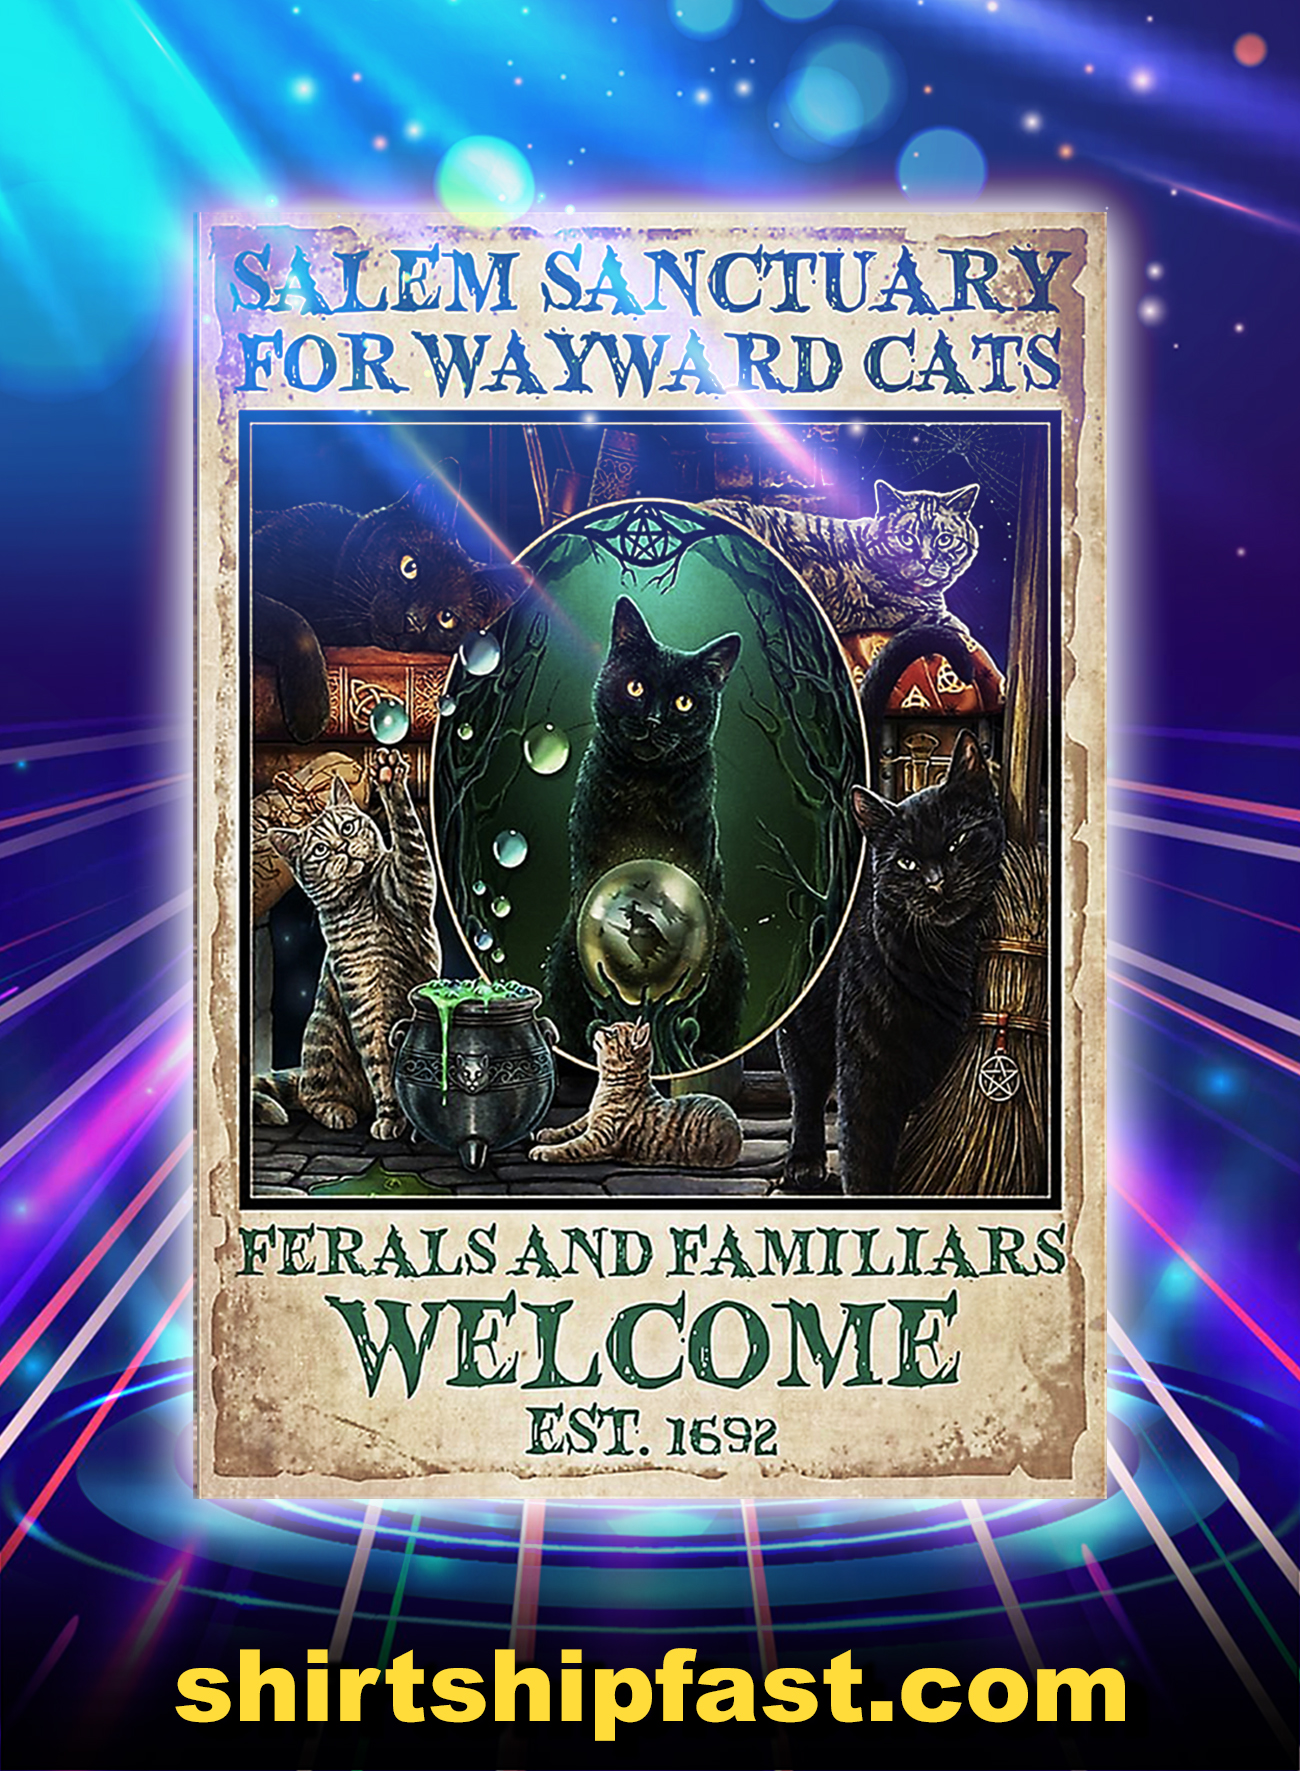 Salem Sanctuary For Wayward Cats Feralsand Familiars Welcome Est 1692 Poster - A1